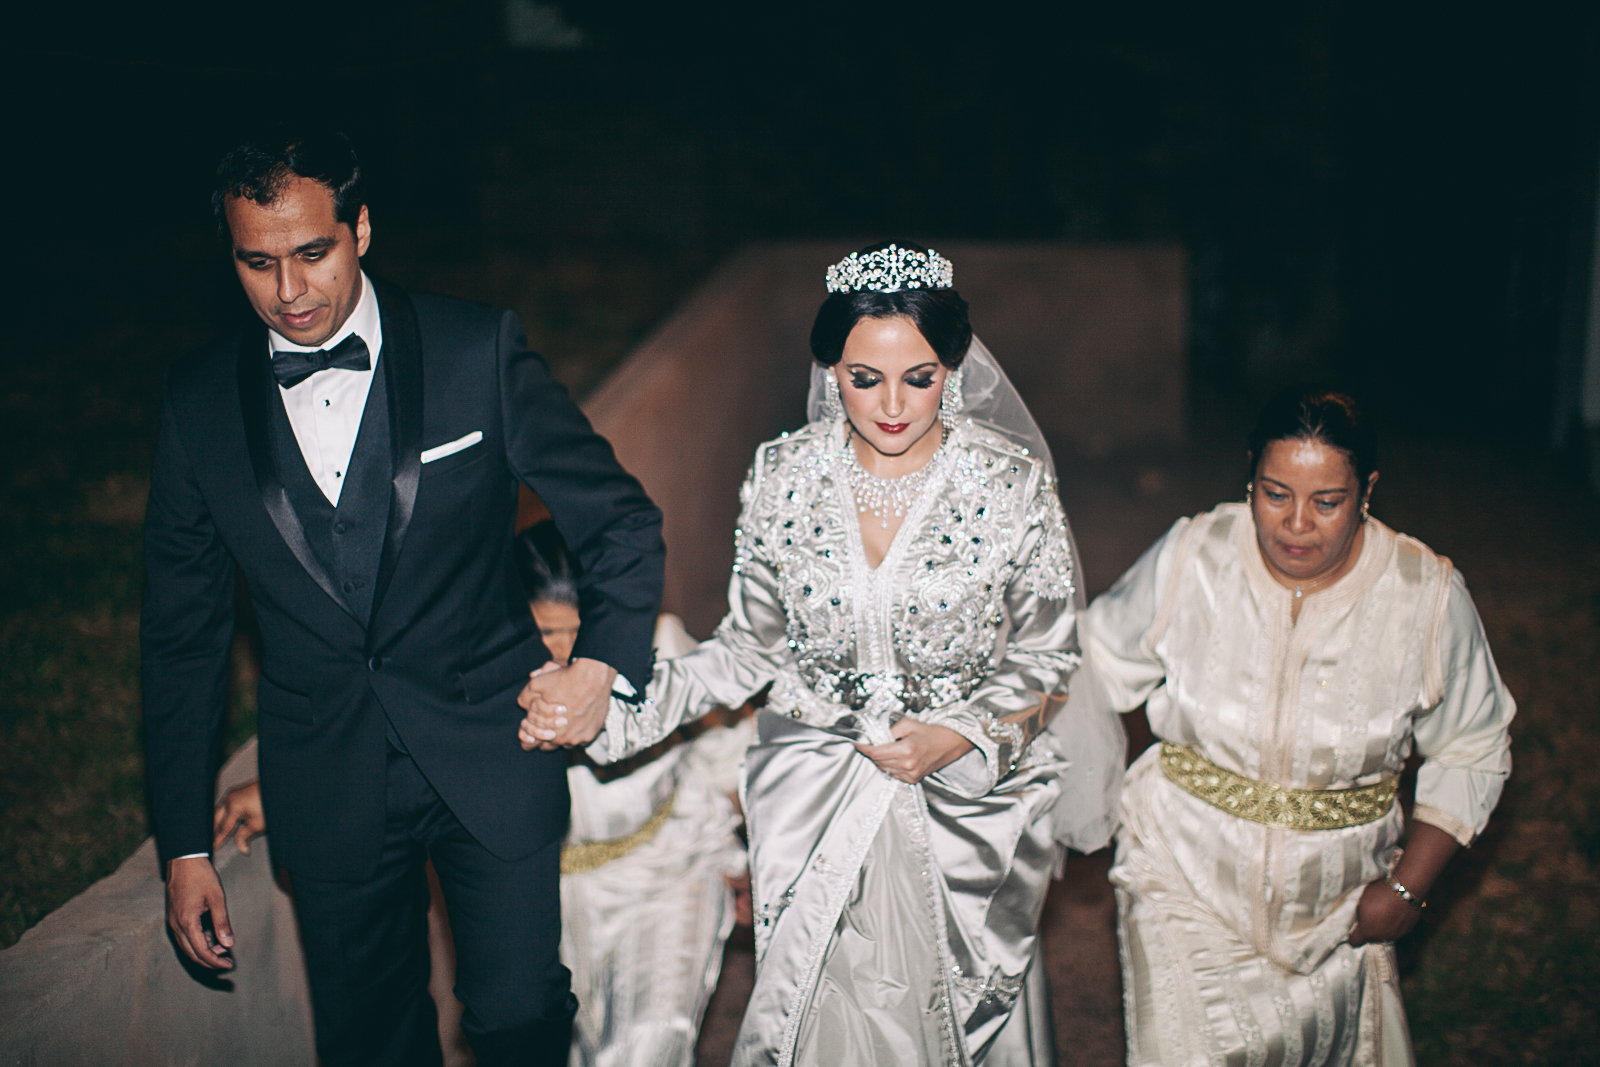 traditional_moroccan_wedding_photographry_casablanca_morocco_houda_vivek_ebony_siovhan_bokeh_photography_052.jpg